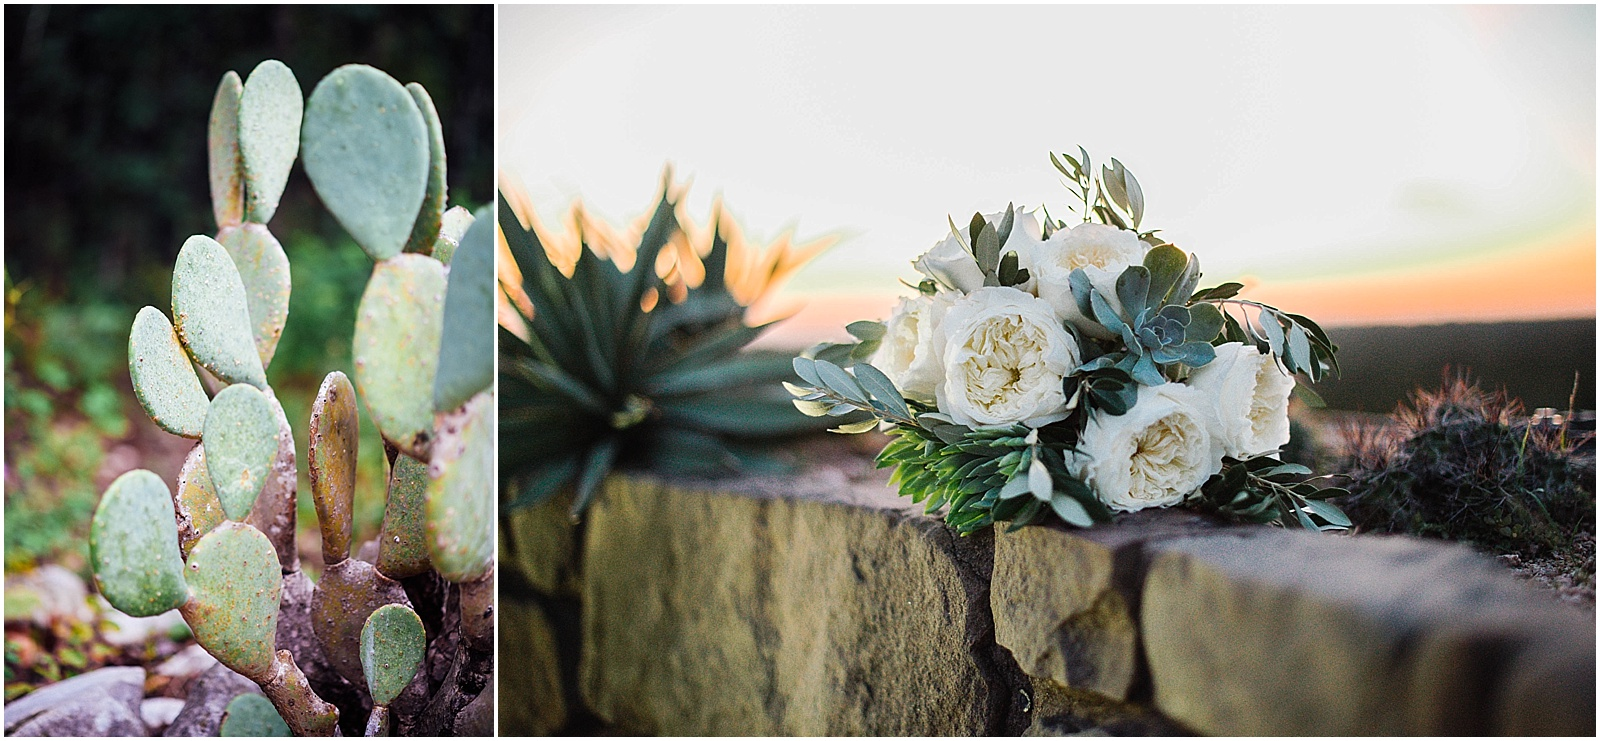 Cactus and Southwest Bouquet Blush Pink Bridal Details at Lady Bird Johnson Wildflower Center Austin Texas Wedding